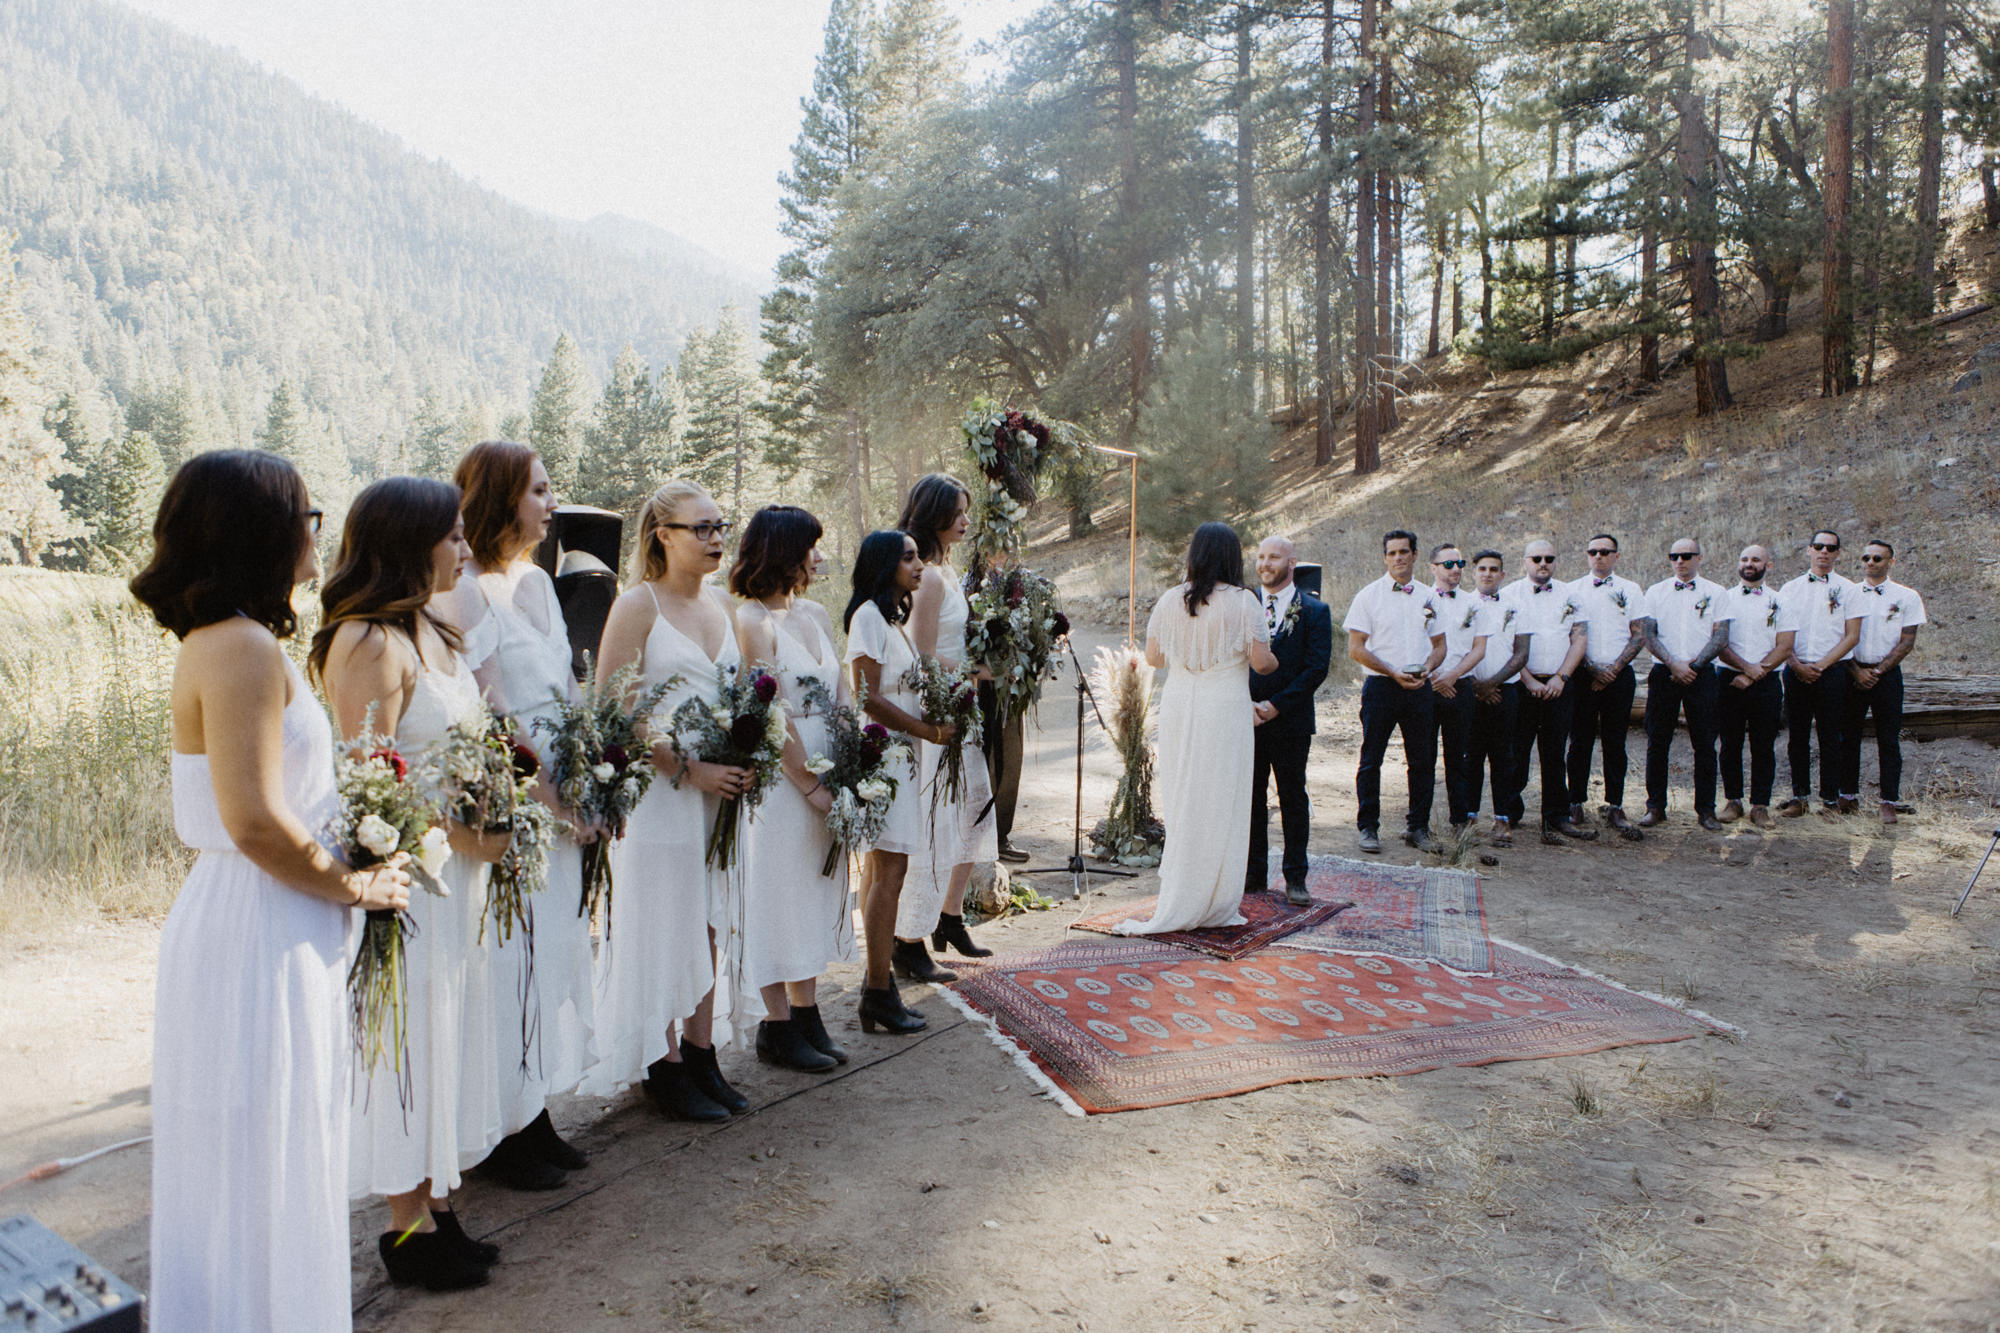 YMCA camp round meadow wedding -72.jpg